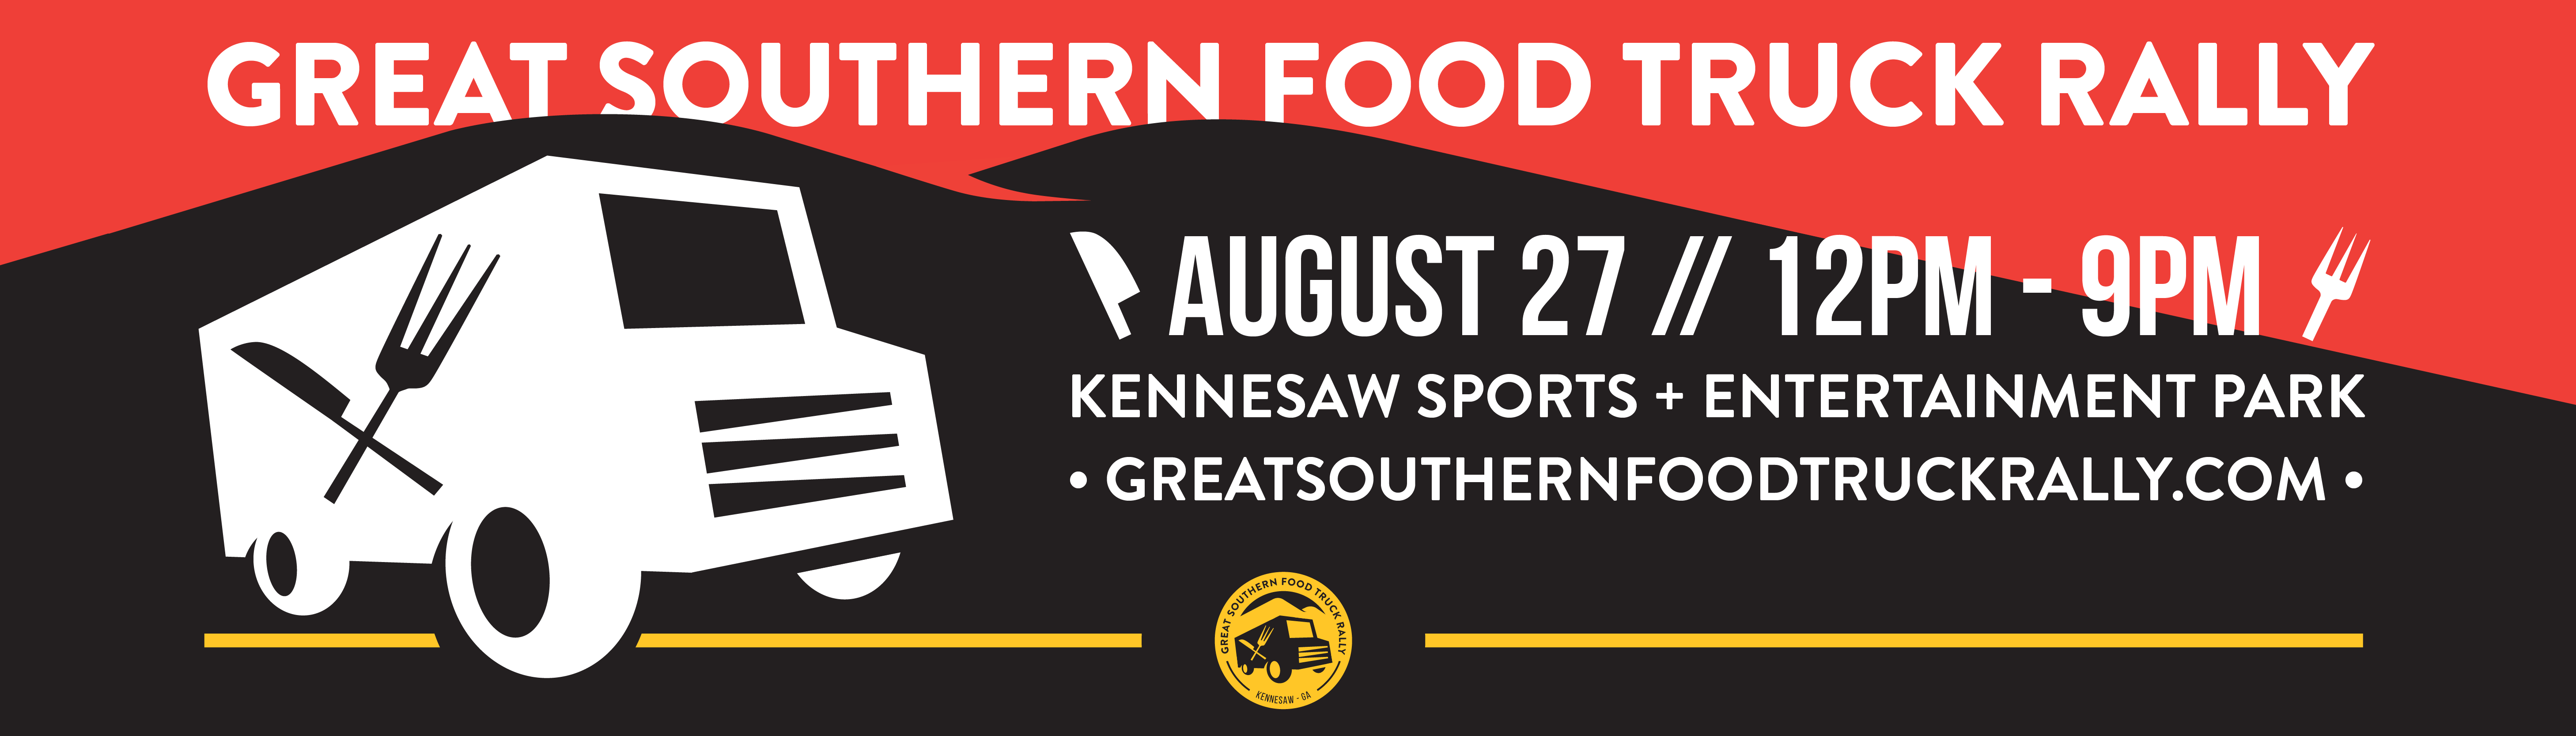 Great Southern Food Truck Rally